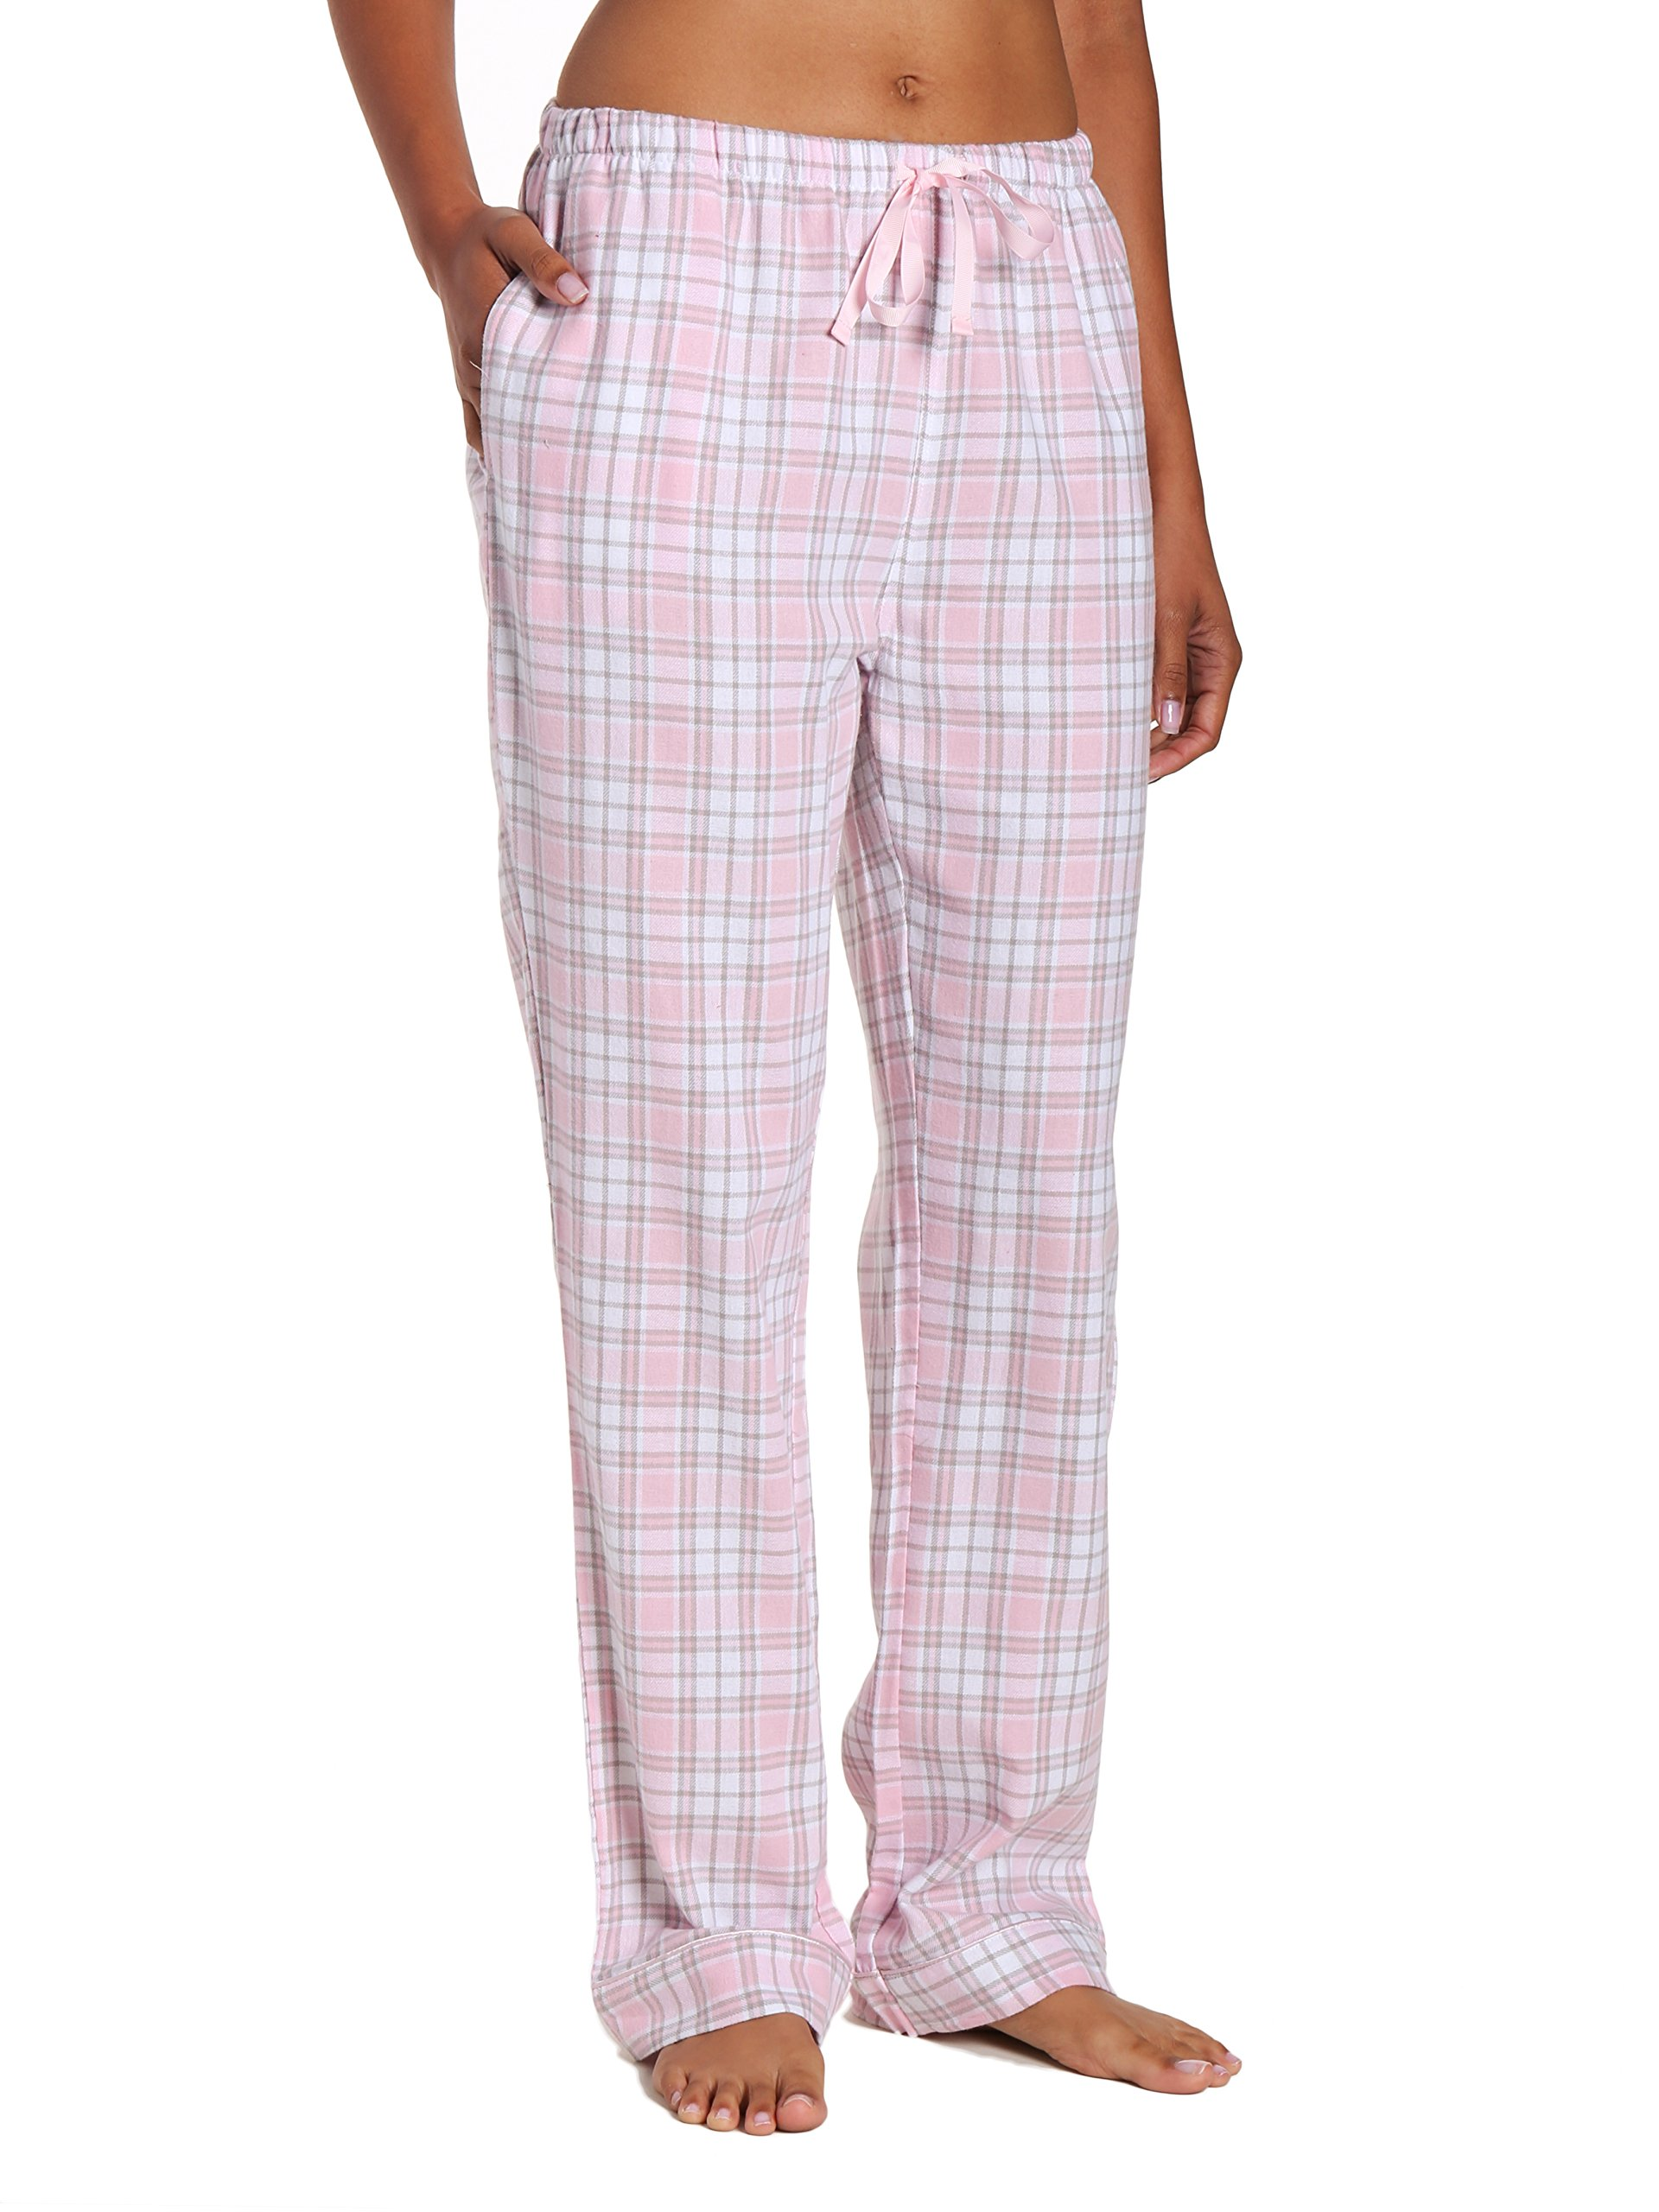 Noble Mount Women's Cotton Lightweight Flannel Lounge Pants - Plaid White-Pink - M